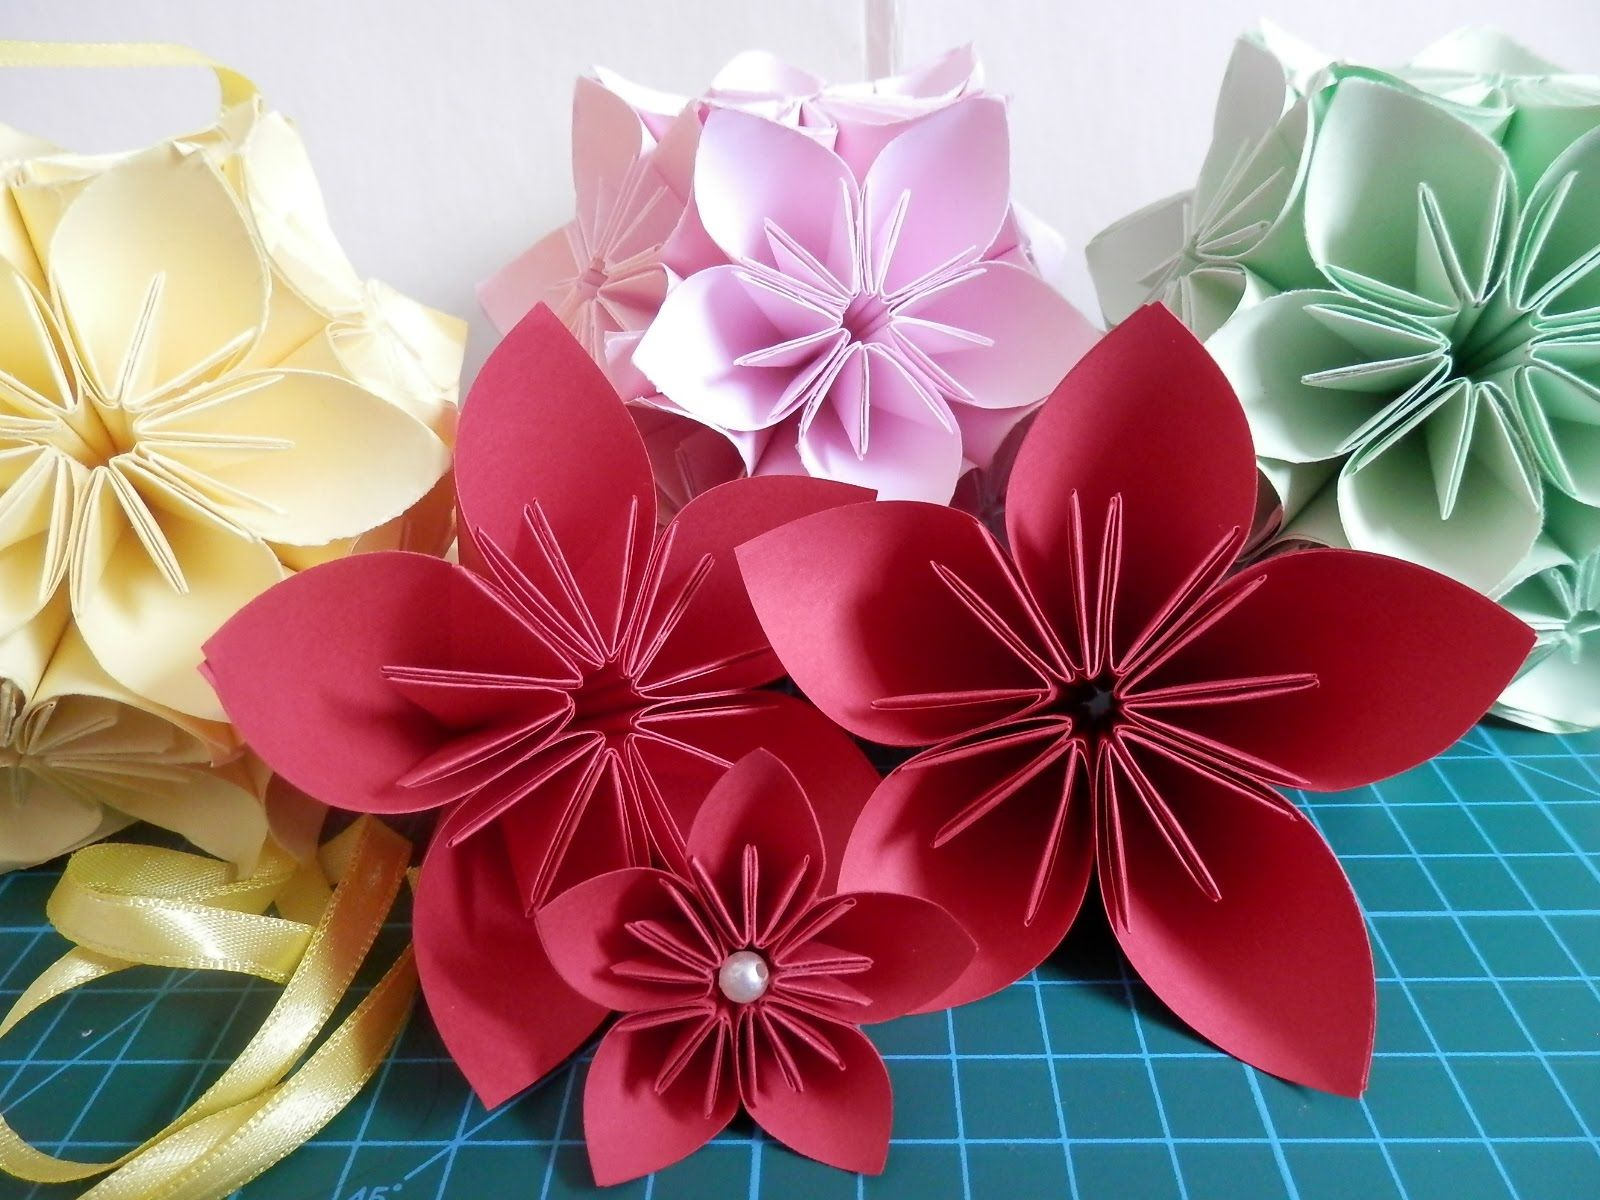 Flor Origami Crafty Pinterest Origami Origami Videos And